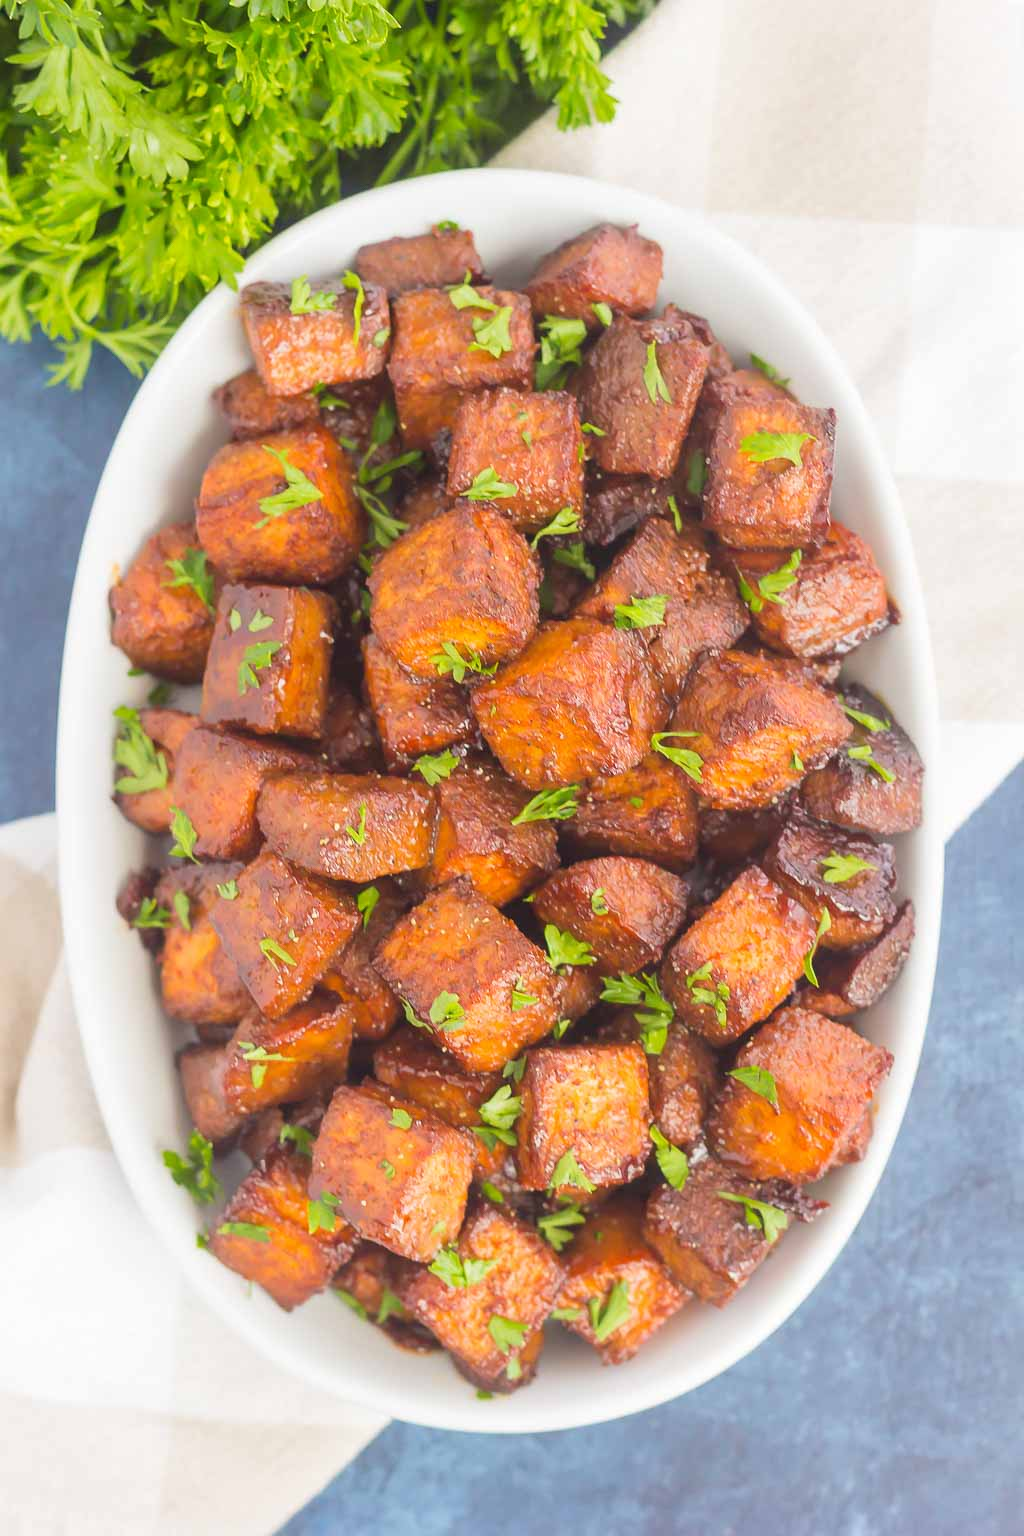 These Roasted Cinnamon Brown Sugar Sweet Potatoes make a deliciously simple side dish. Sweet cinnamon and brown sugar are tossed with sweet potatoes and roasted until crispy on the outside and tender on the inside. Loaded with flavor and easy to make, this dish is perfect for sweet potato lovers everywhere!